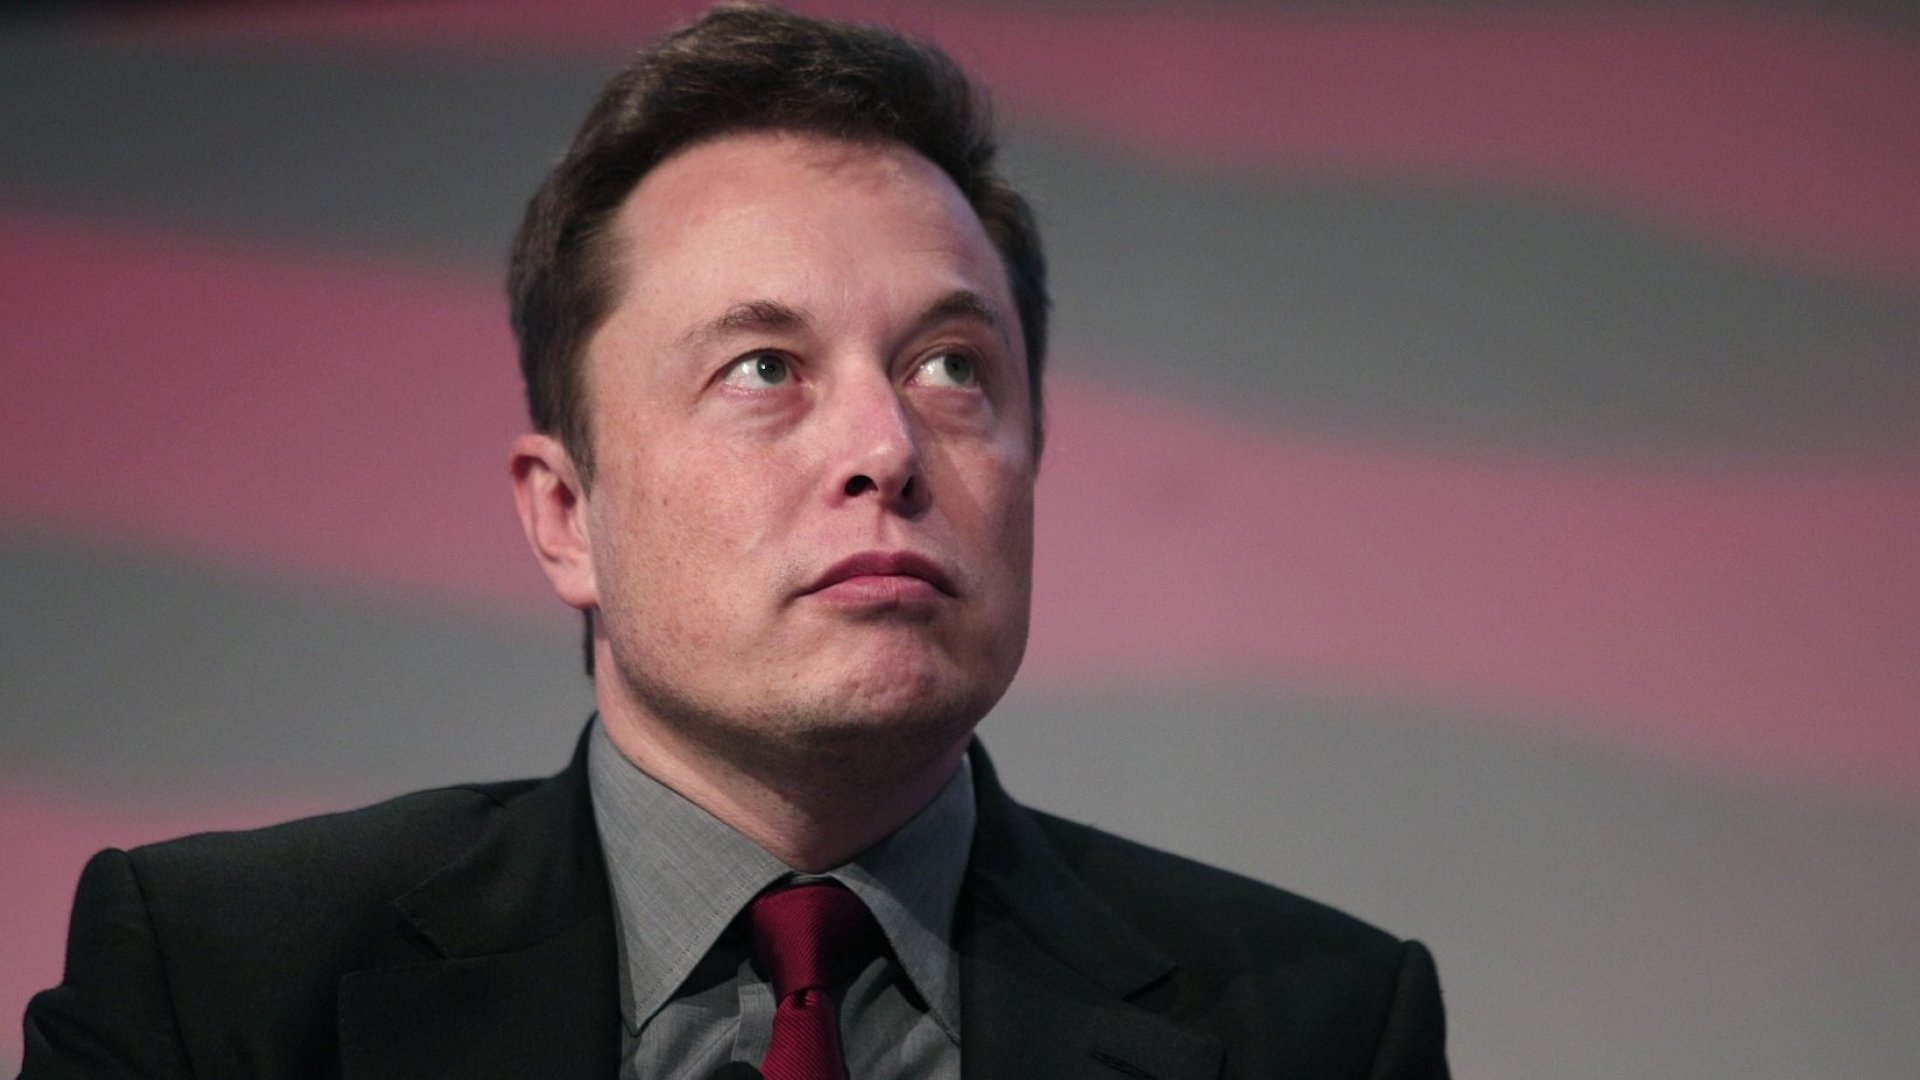 Yes, Elon. The drill will enter just above your left eyebrow.